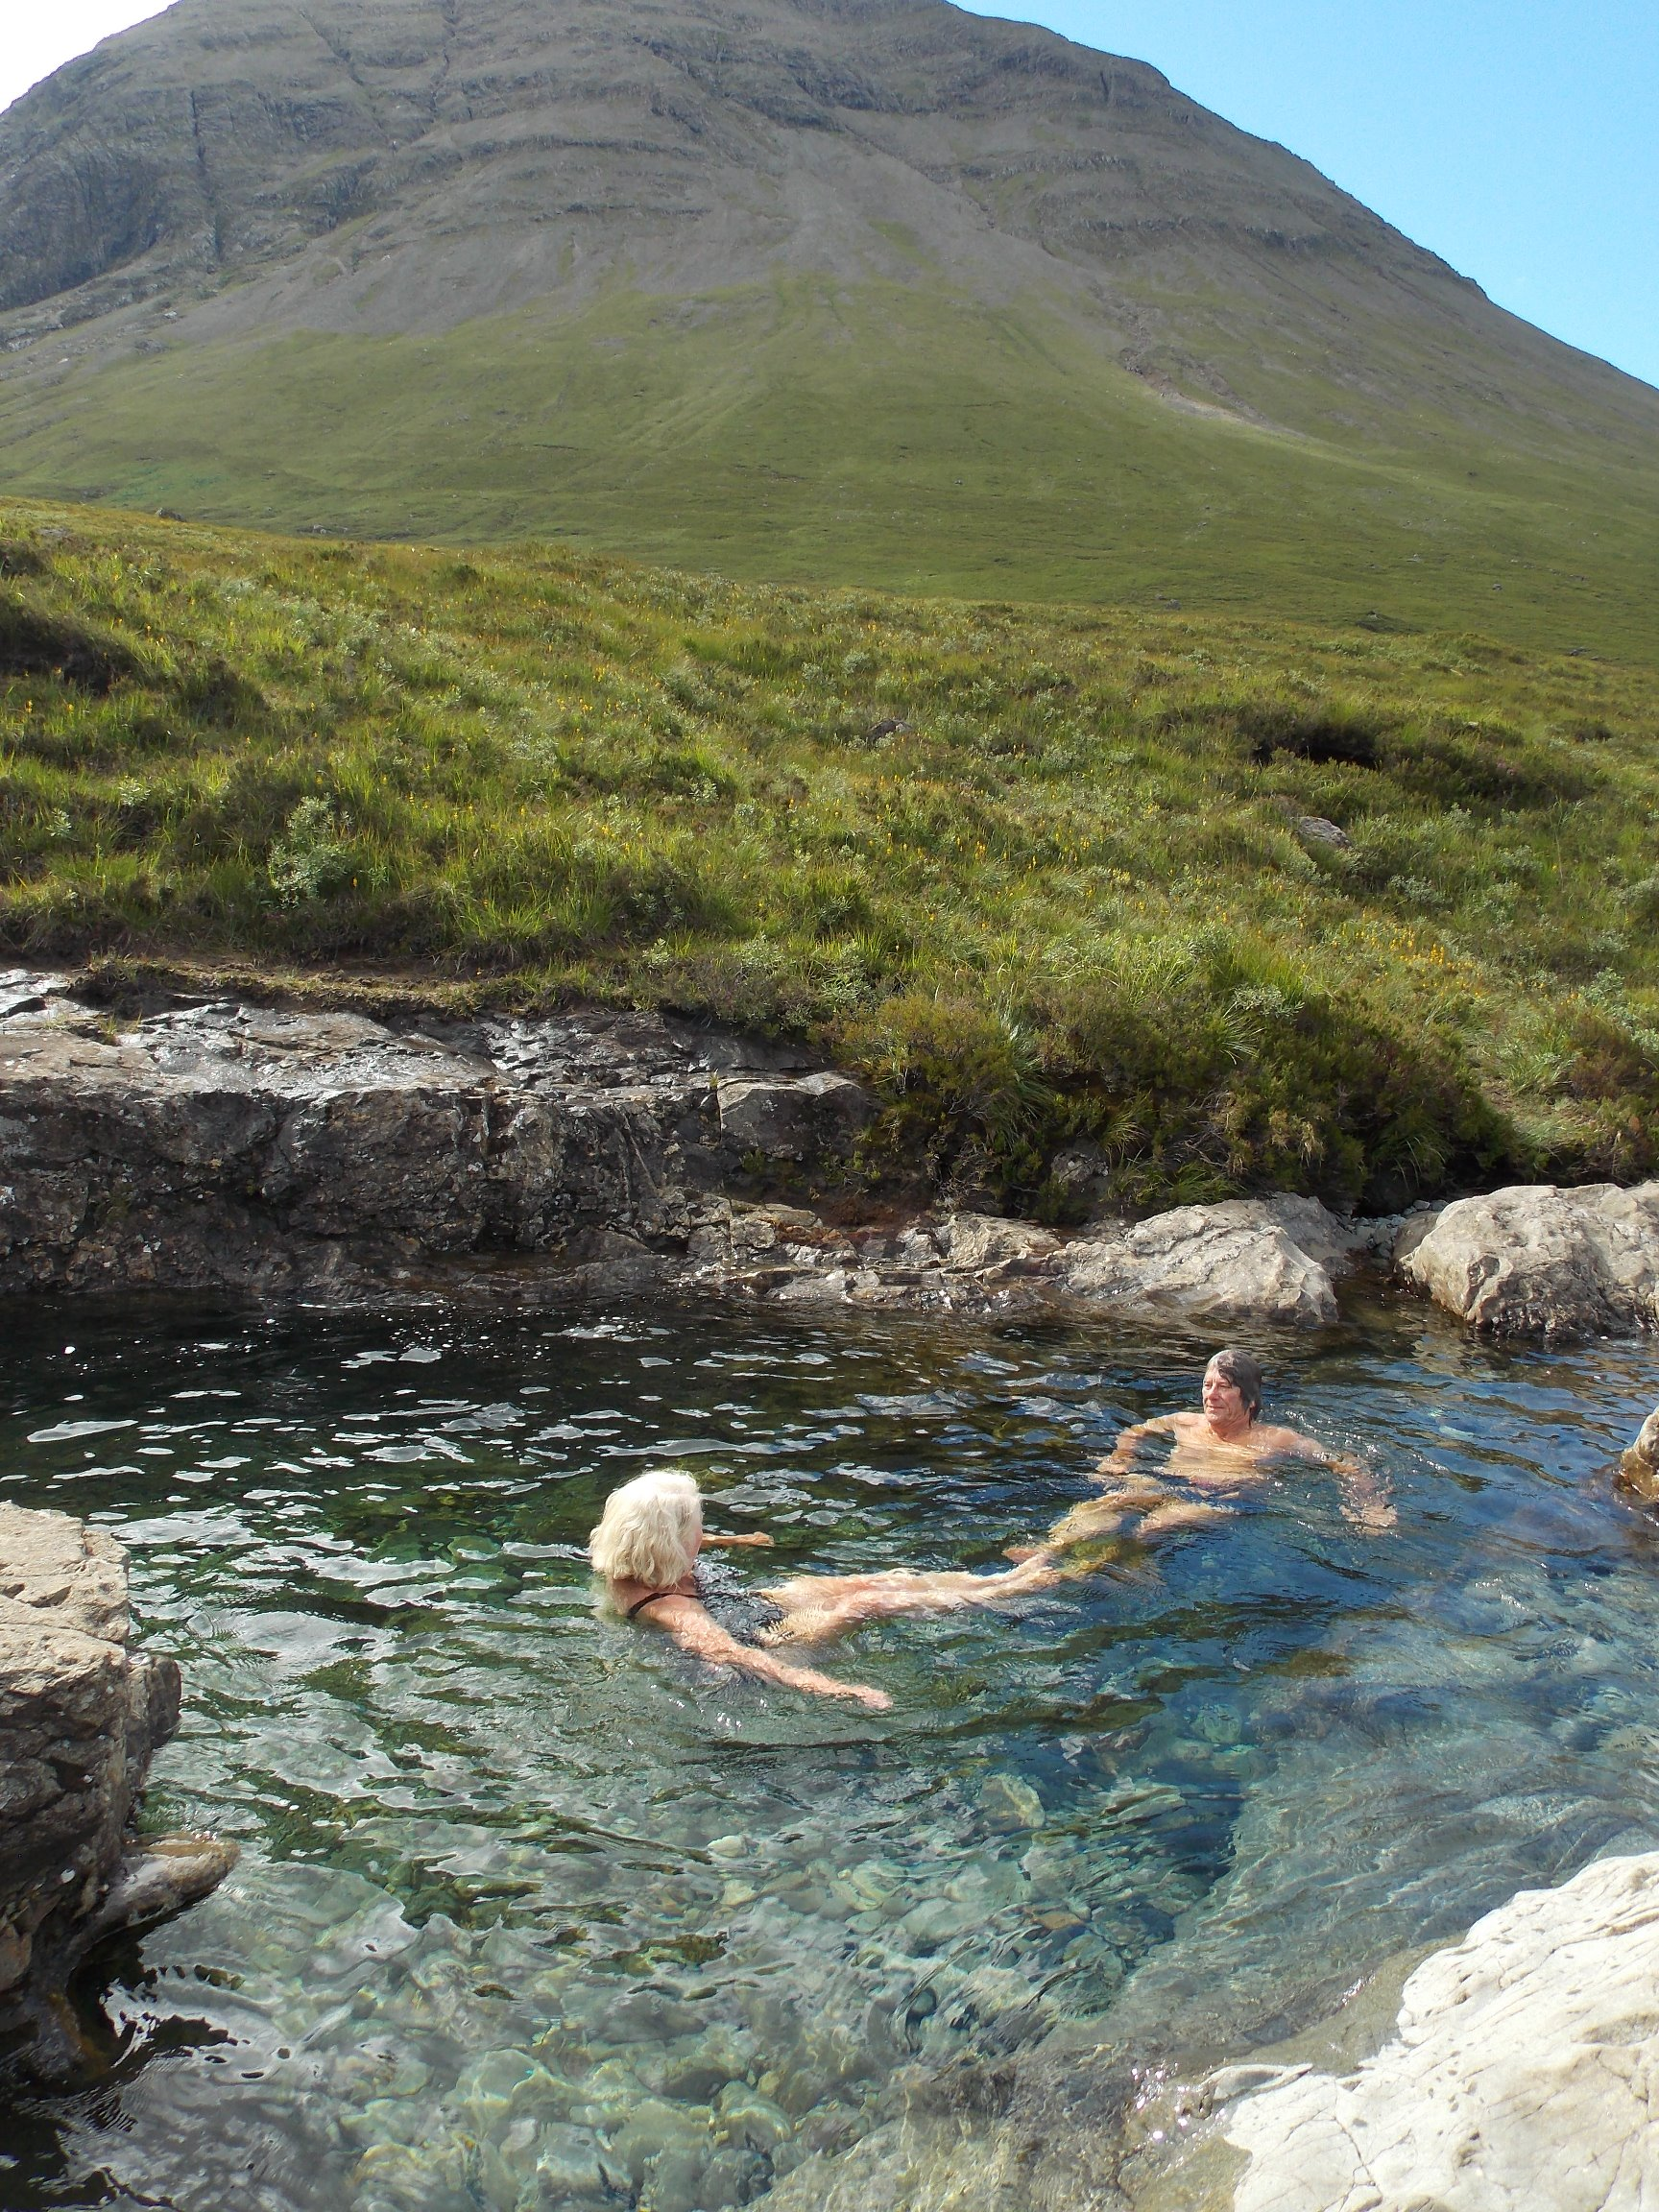 Relaxing in a fairy pool on the Isle of Skye